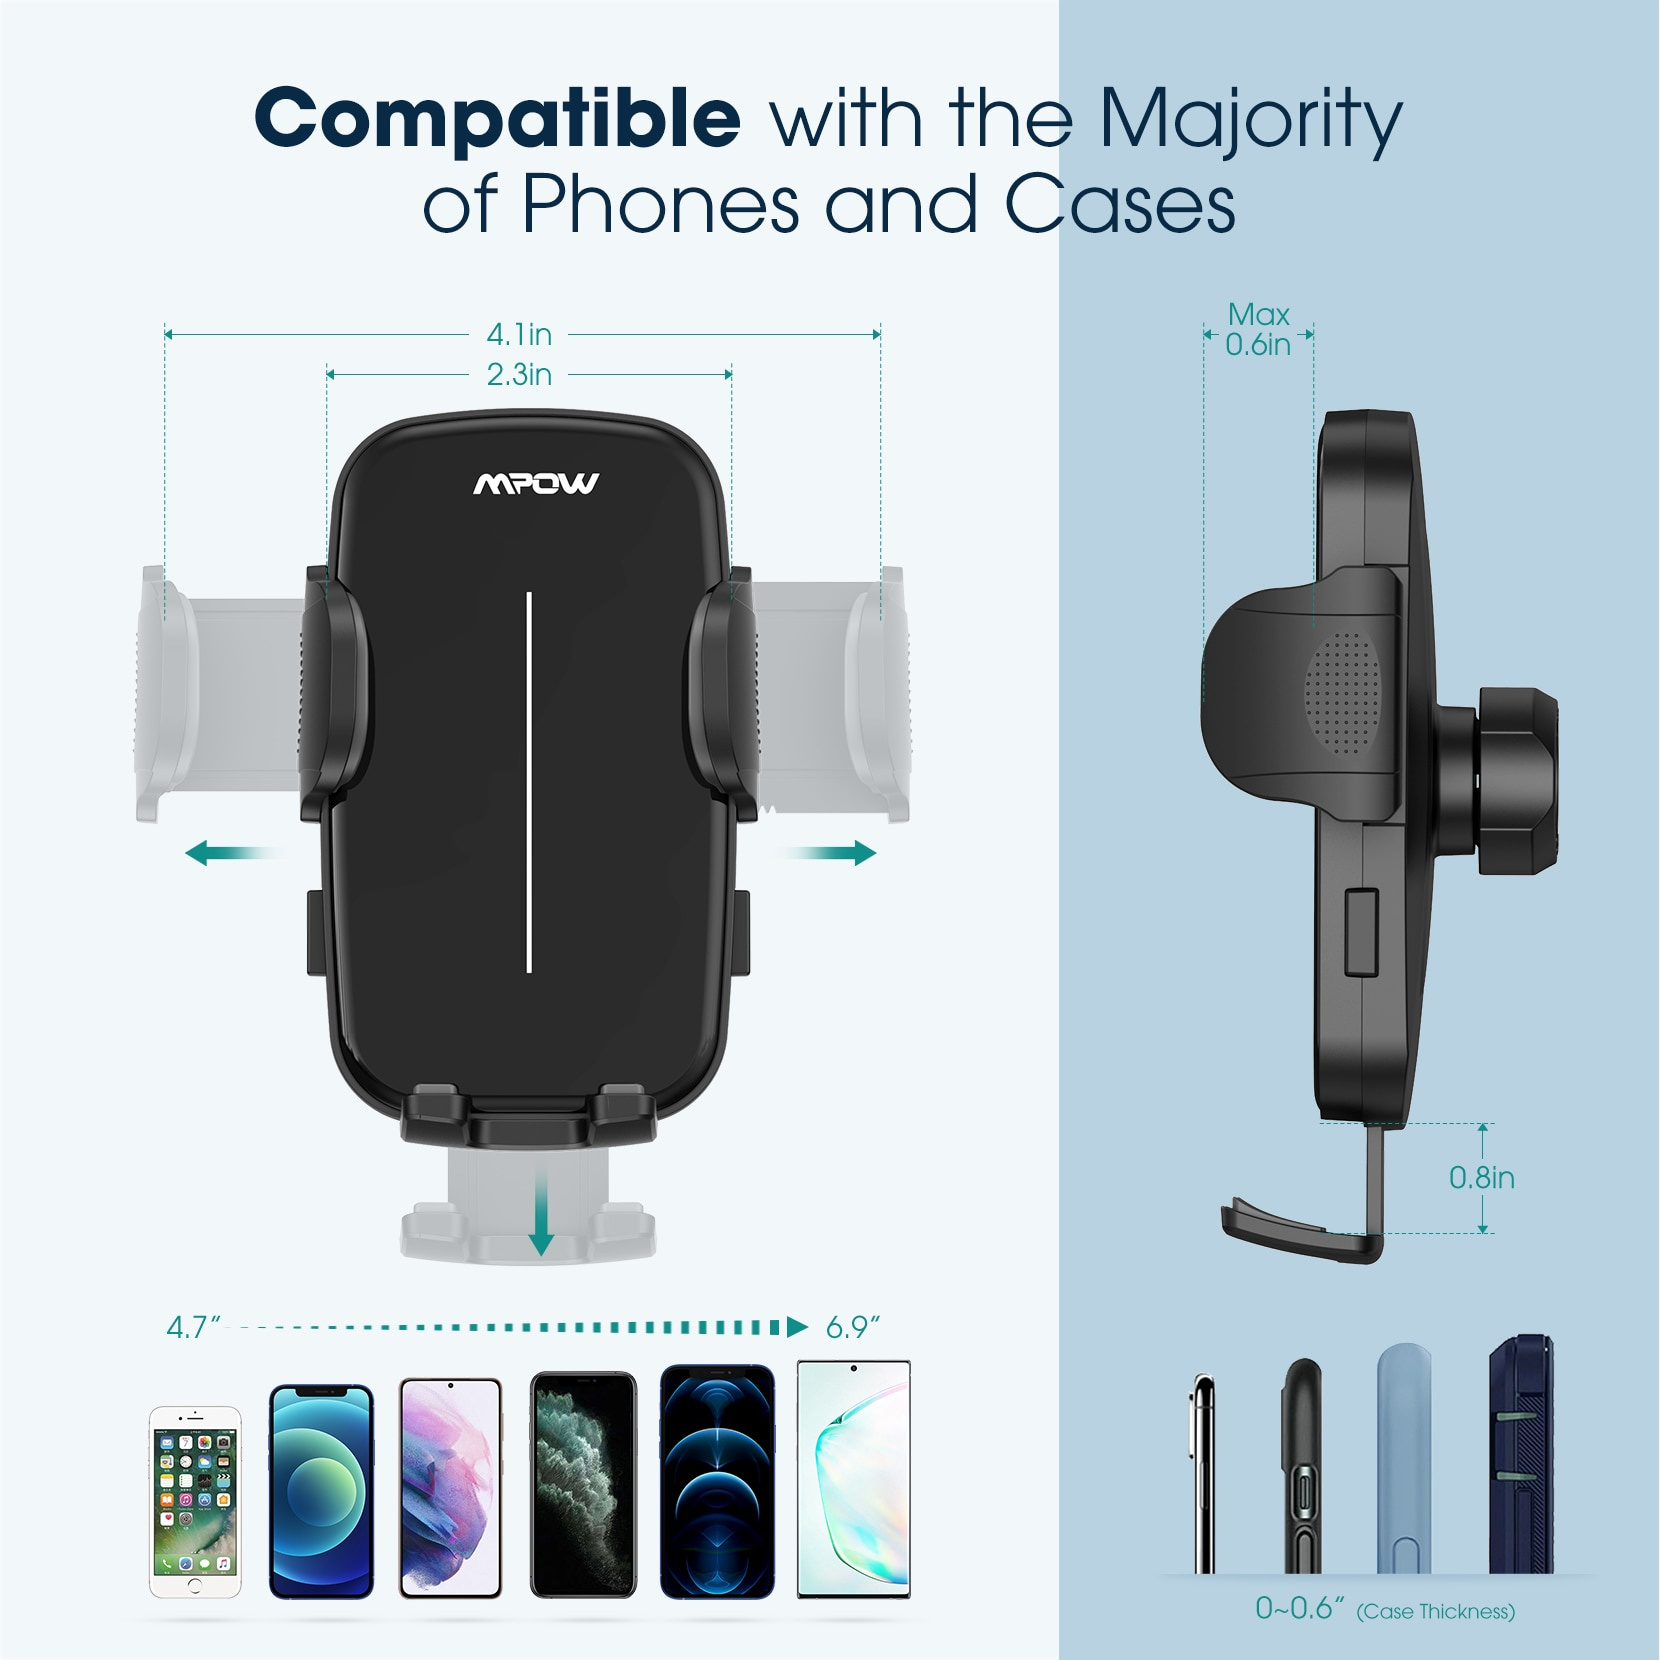 H2e0827644c604a419eb8b1805c5d69c41 - Mpow CA174 Universal Car Phone Mount Air Vent Car Phone Holder with Stable Clip Compatible with iPhone 12 11 Pro Max XS 8 Galaxy